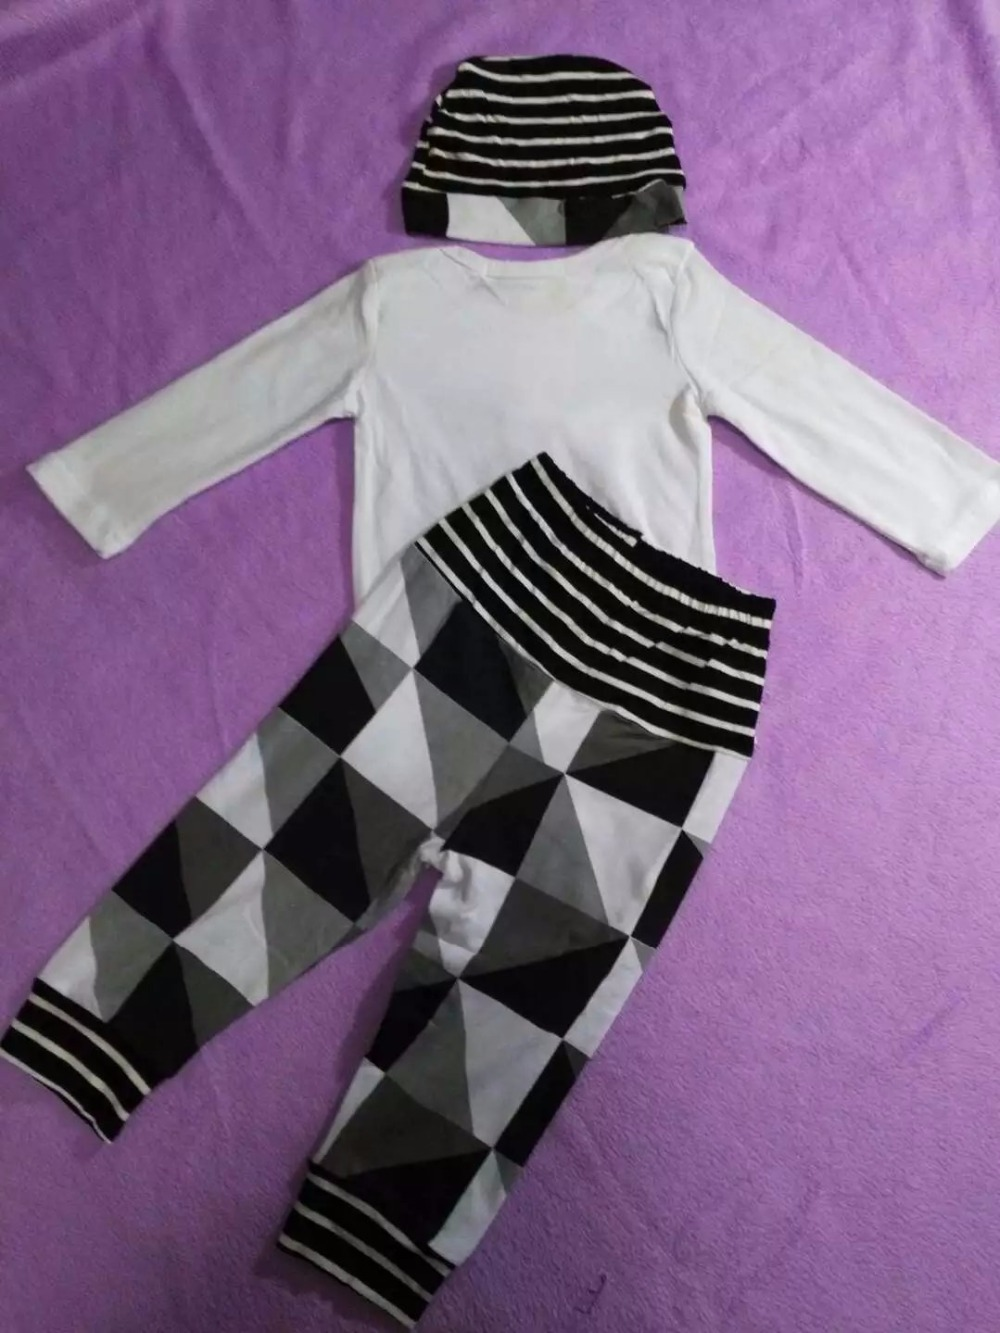 46a66b5c8 Baby Clothing Sets Infant Outfits Newborn Romper Suits 3PCS Striped ...